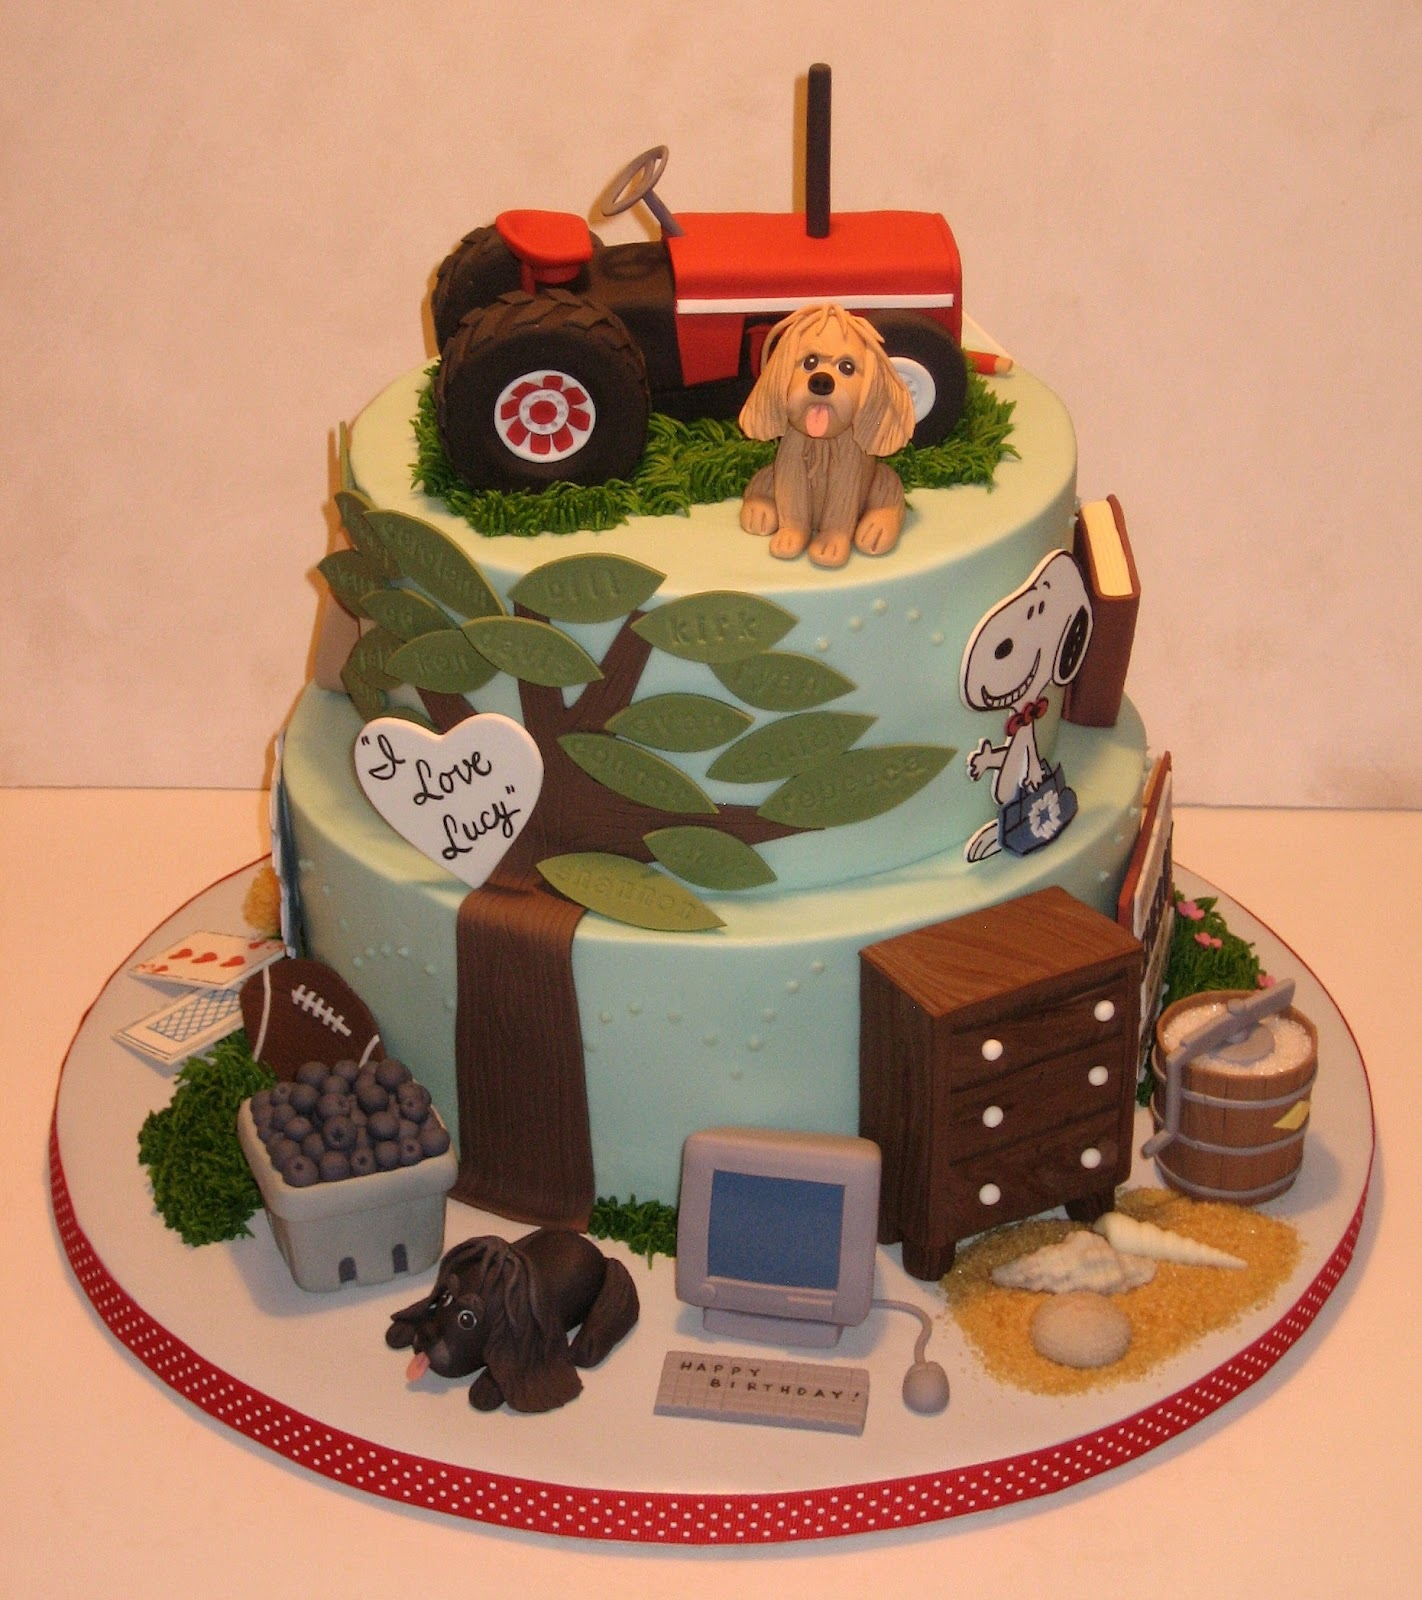 Birthday Cake For 90 Year Old Man Image Inspiration of Cake and